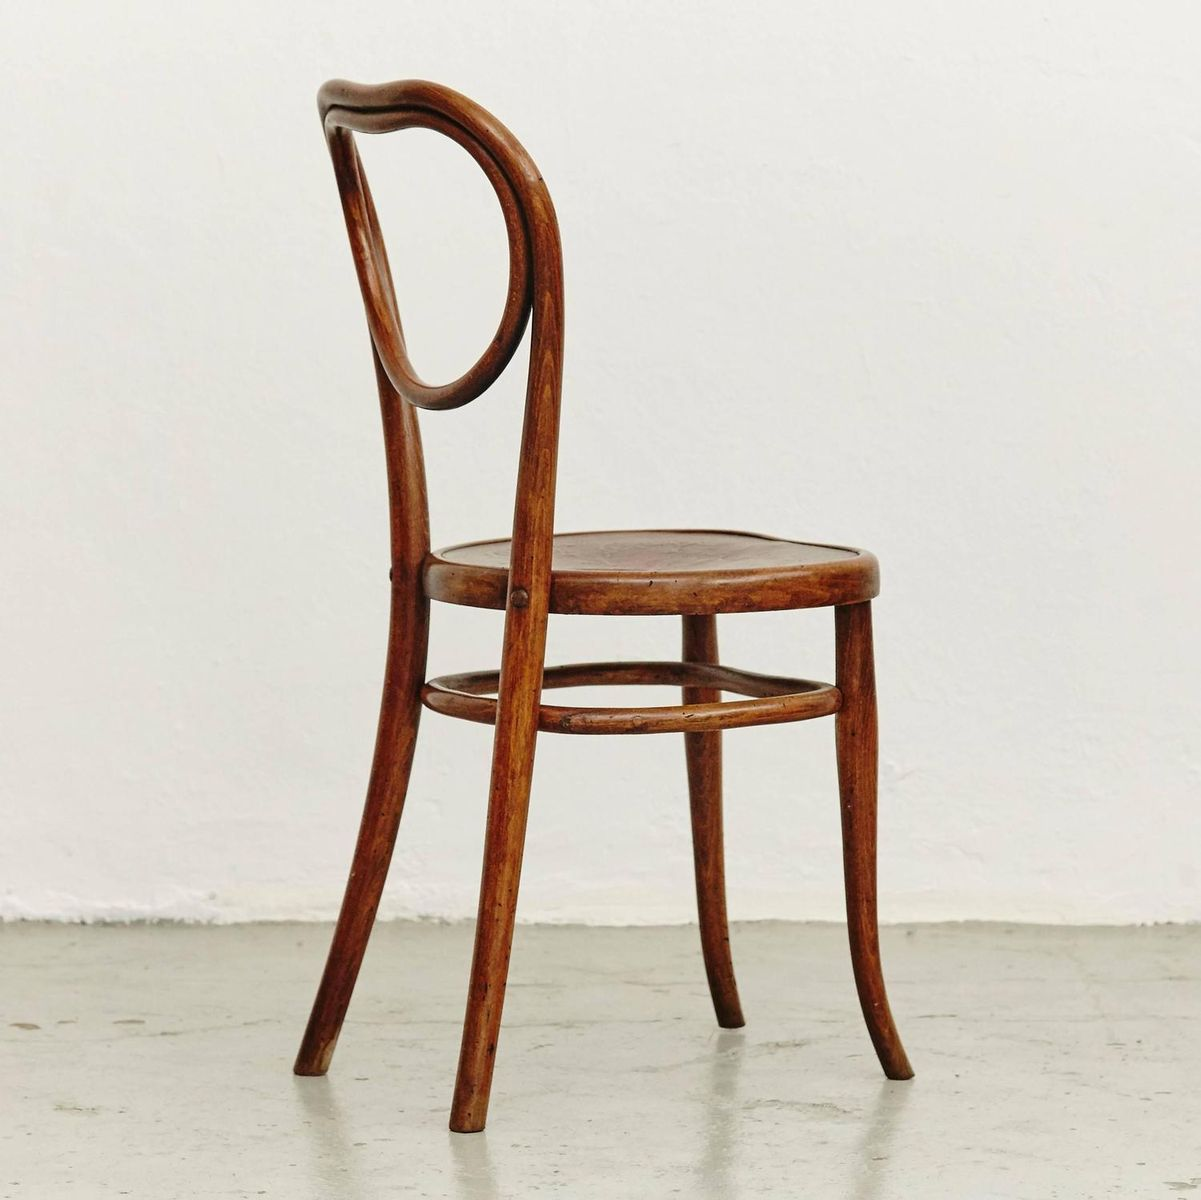 Vintage bent plywood thonet chair - Thonet Chairs For Thonet 1920s Set Of 2 For Sale At Pamono